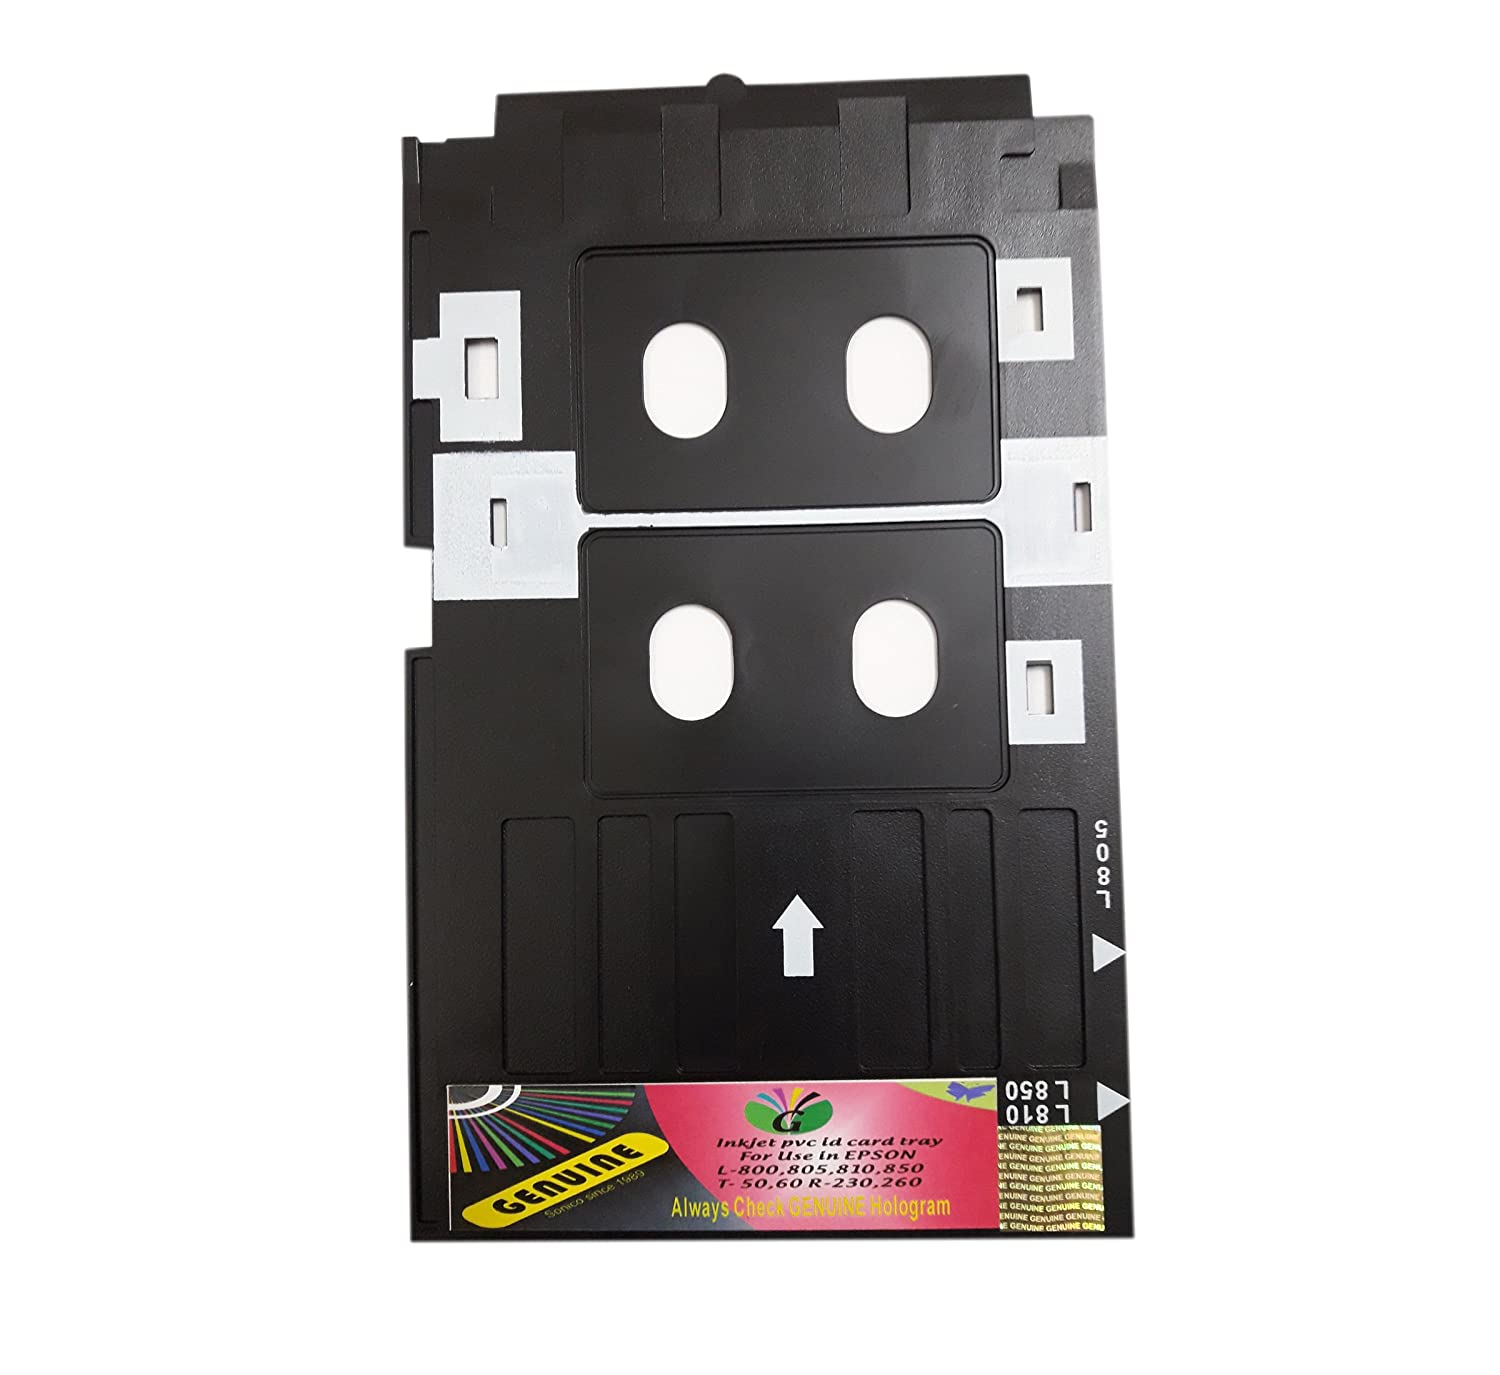 Id Tray Inkjet Card l805 in Office Products Amazon Set 3